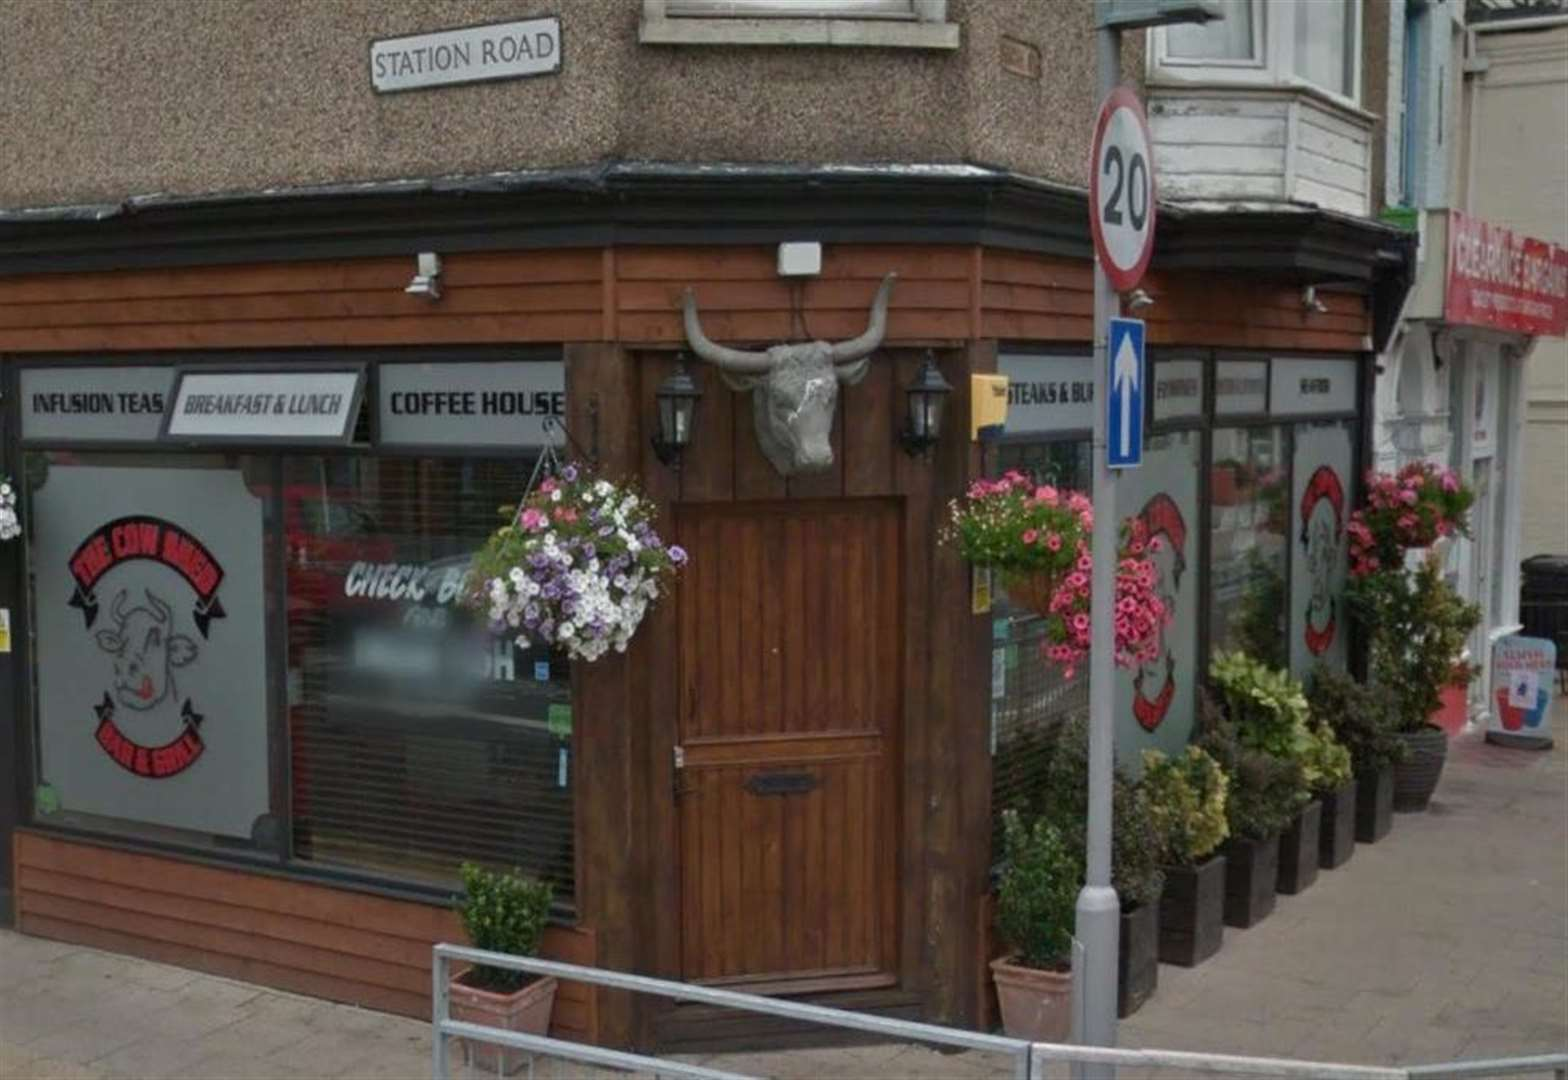 Two high street restaurants up for sale